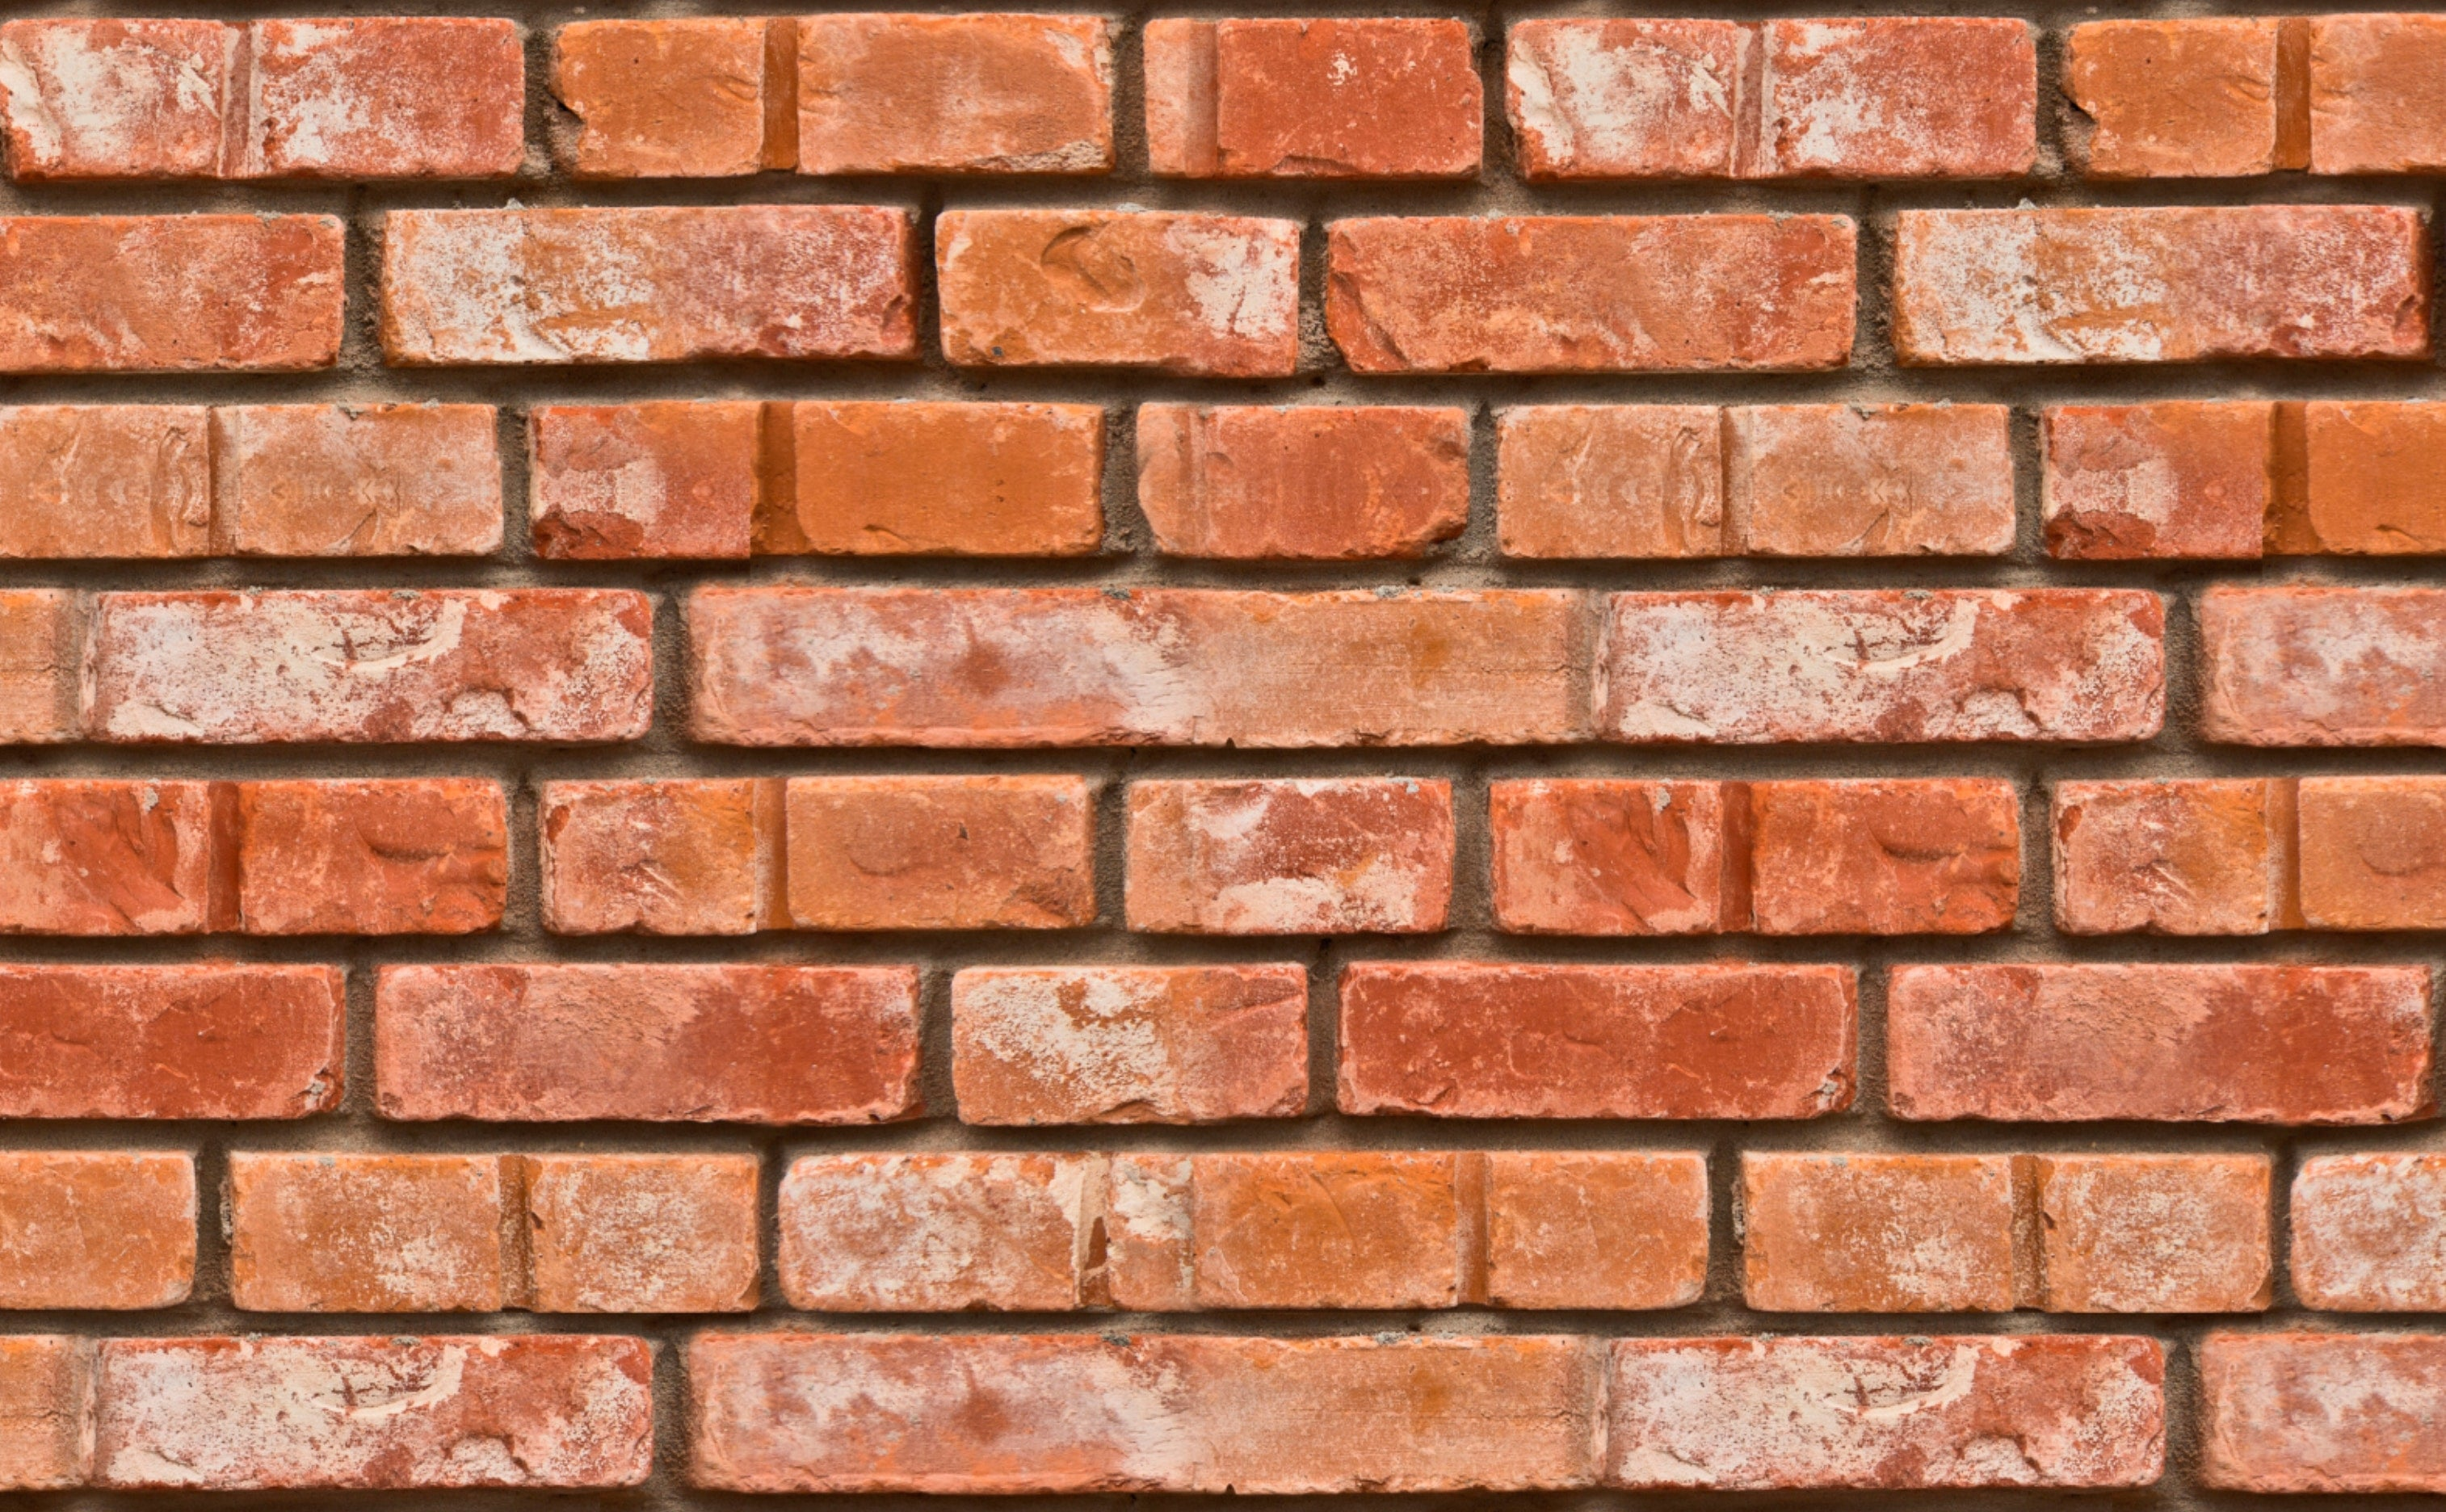 w0267 1s Realistic Bricks Removable Peel and Stick Wallpaper Repeating Pattern Sample 1